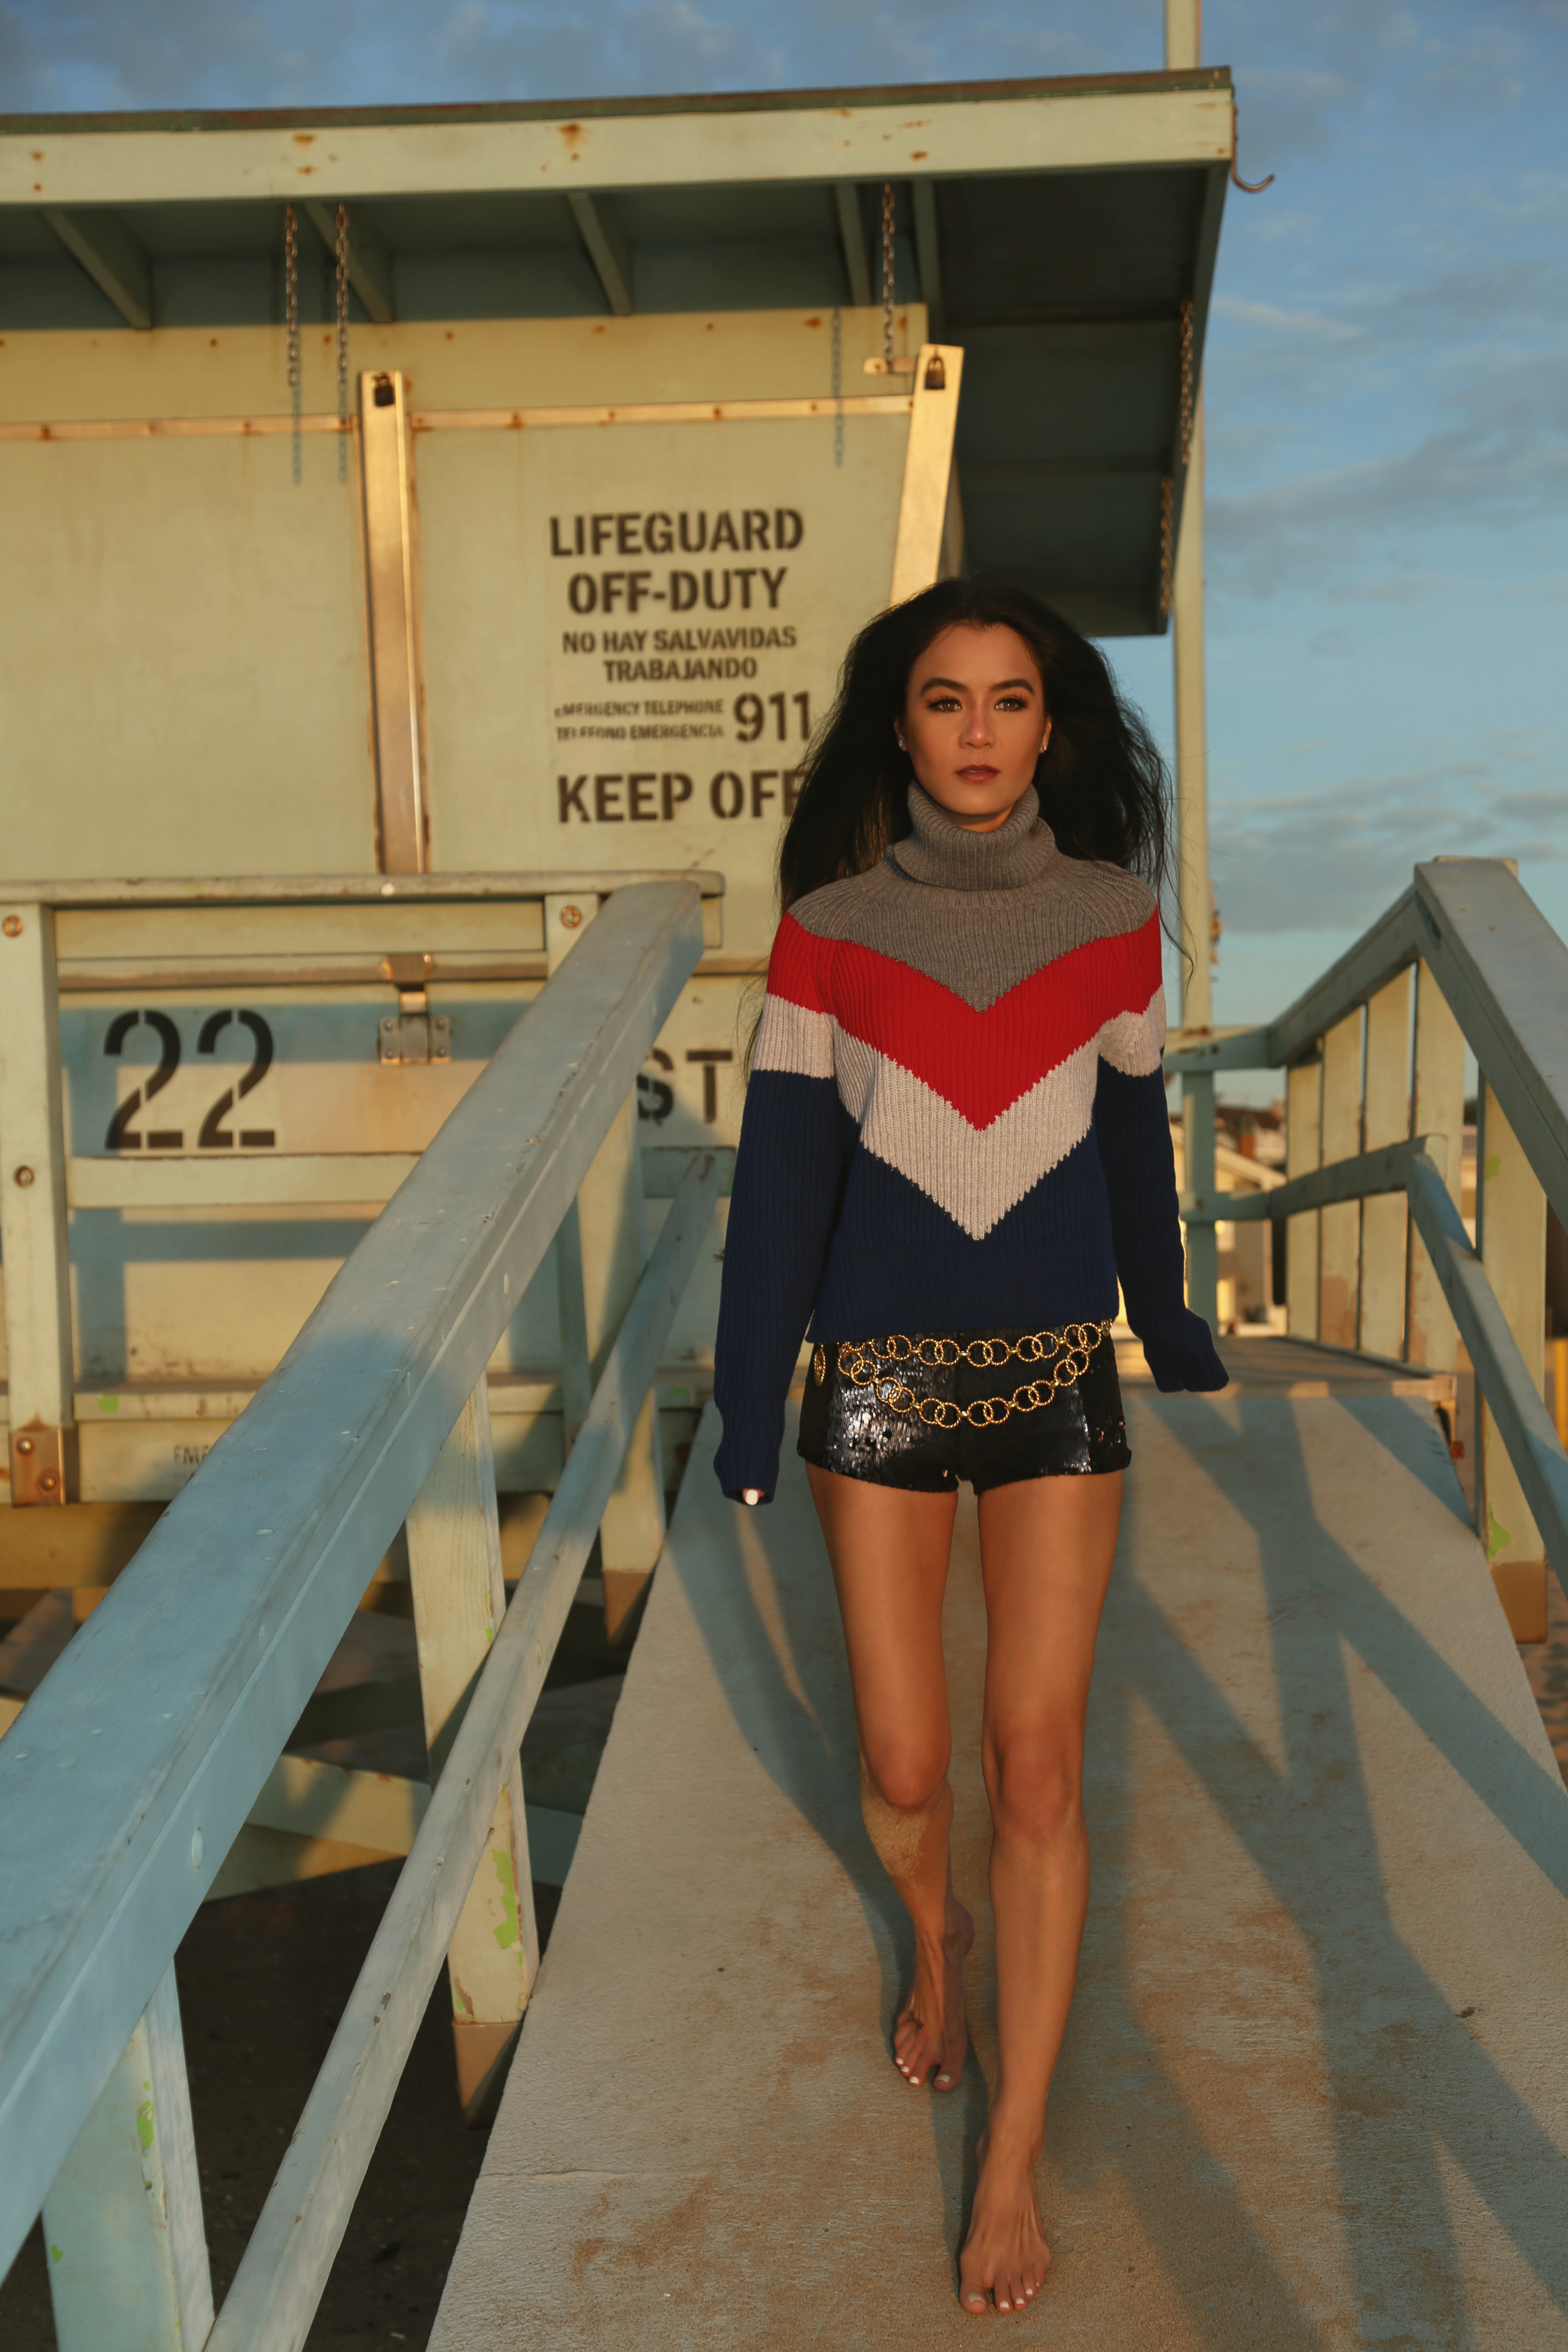 NYC Style Blogger Annamaria Stewart wearing the Wilfred Free Tilberg Cropped Turtleneck Sweater in Avalanche/Rich Red Color Block Stripe from Aritzia, High-Waisted Sequin Shorts in Navy from Silence + Noise from Urban Outfitters, and a Vintage 90s Chanel Gold Chain Belt, Pictured at a Lifeguard Stand in Hermosa Beach, California - The Shopping Patch